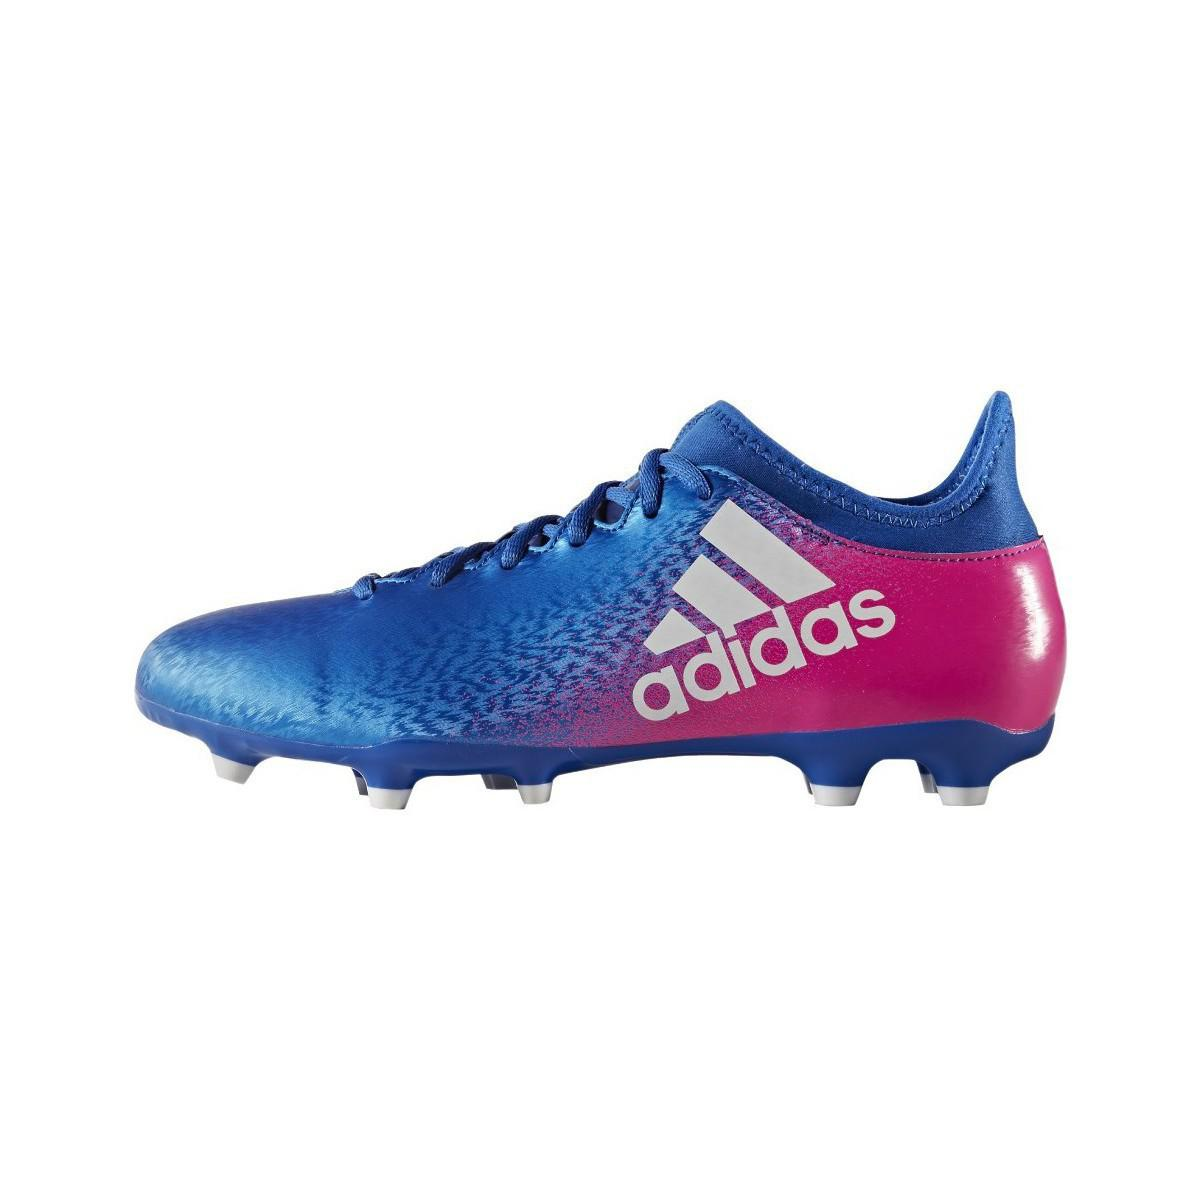 Adidas - X 163 Fg Men s Football Boots In Pink for Men - Lyst. View  fullscreen 2b2e04ae6a361